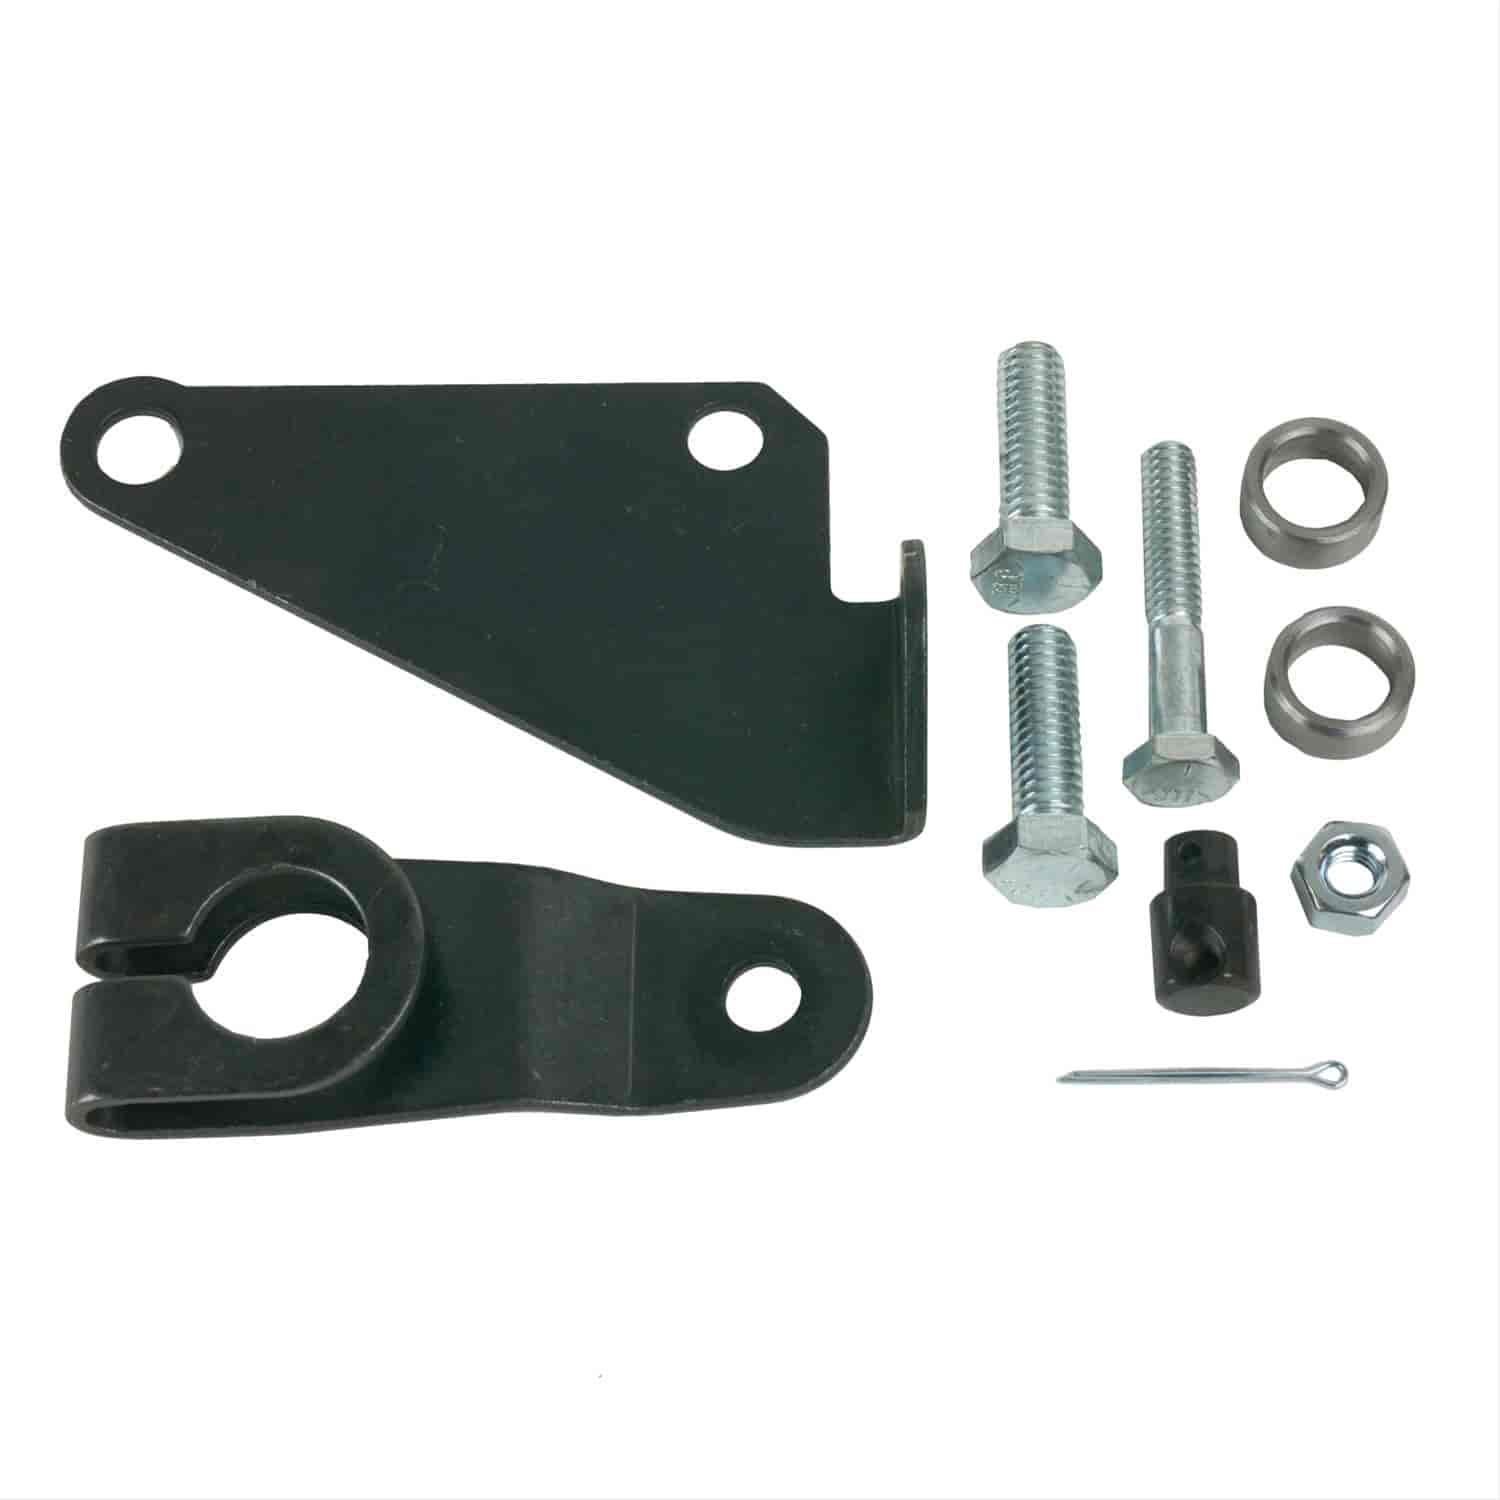 B&M 40497 - B&M Automatic Shifter Brackets and Levers